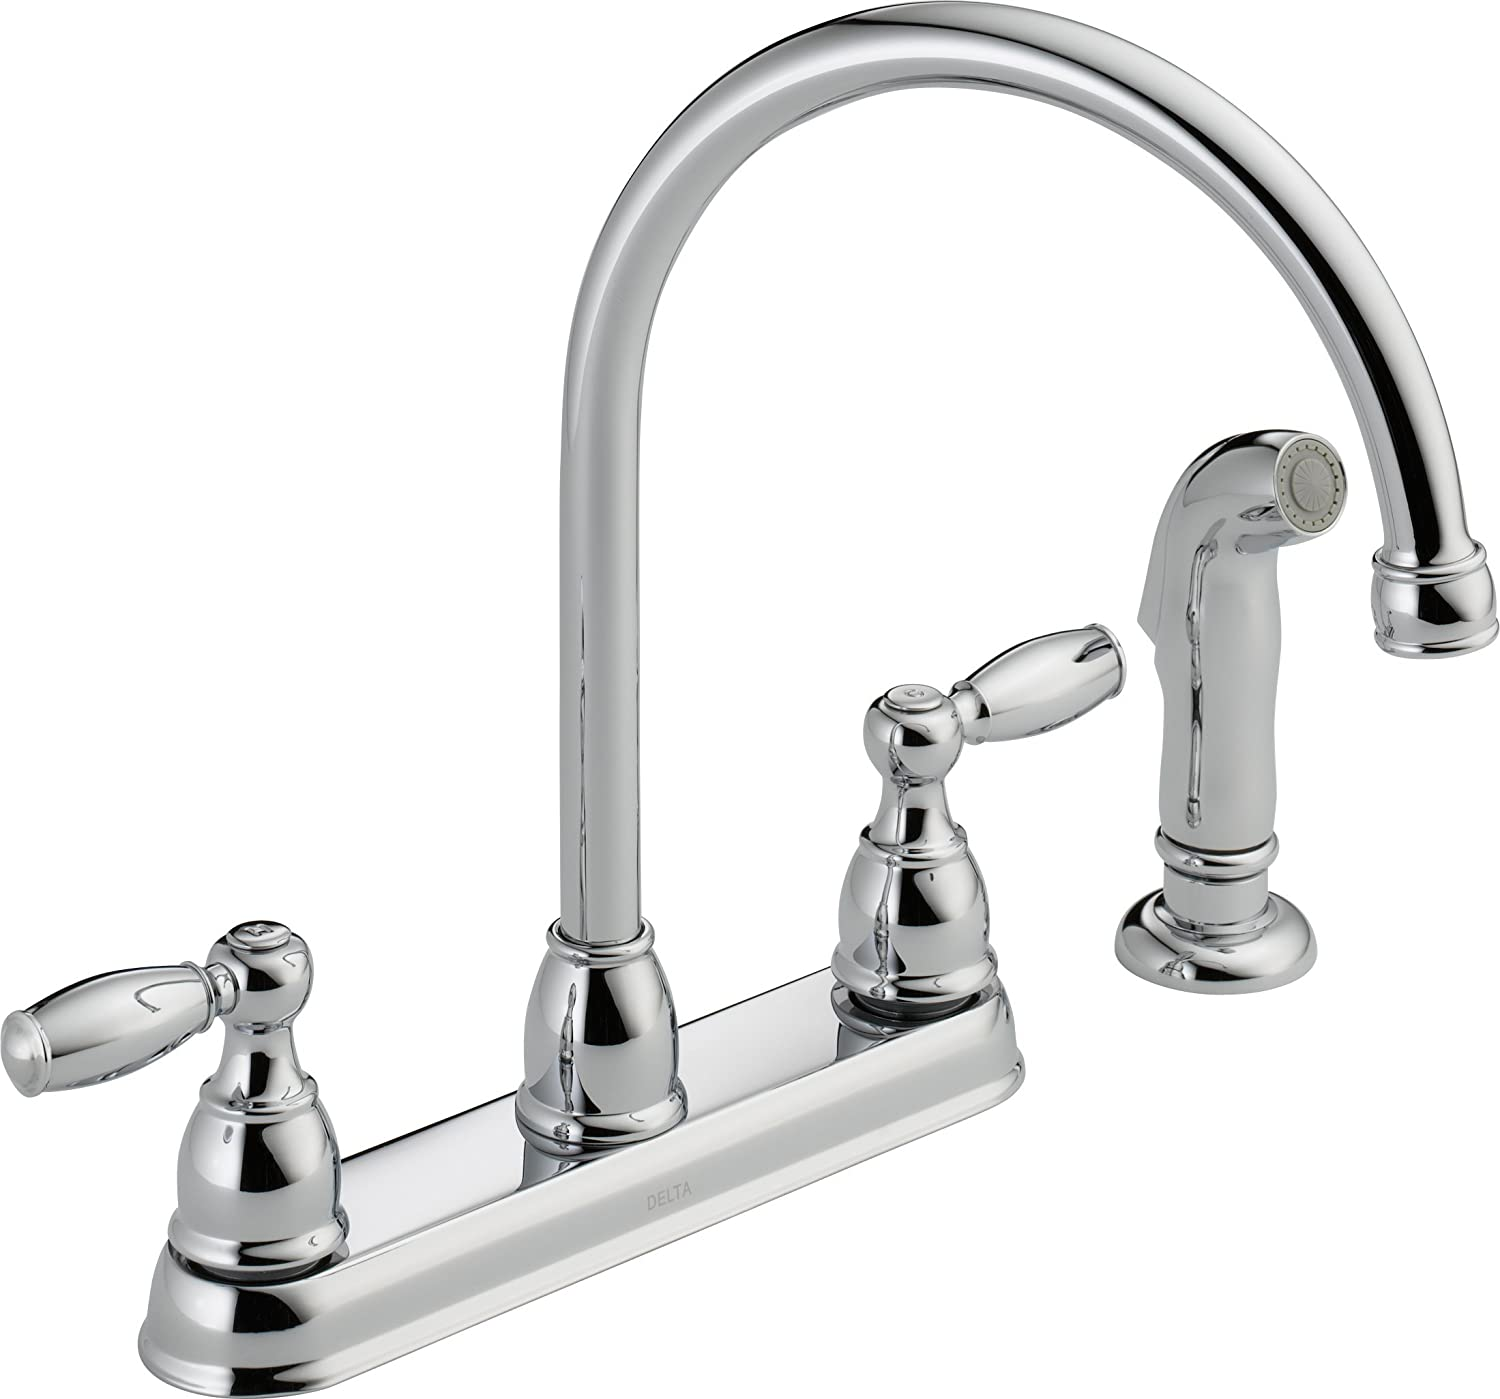 best of kitchen sink instructions fresh kohler faucets faucet grohe two replacement delta handle blog bathroom parts repair